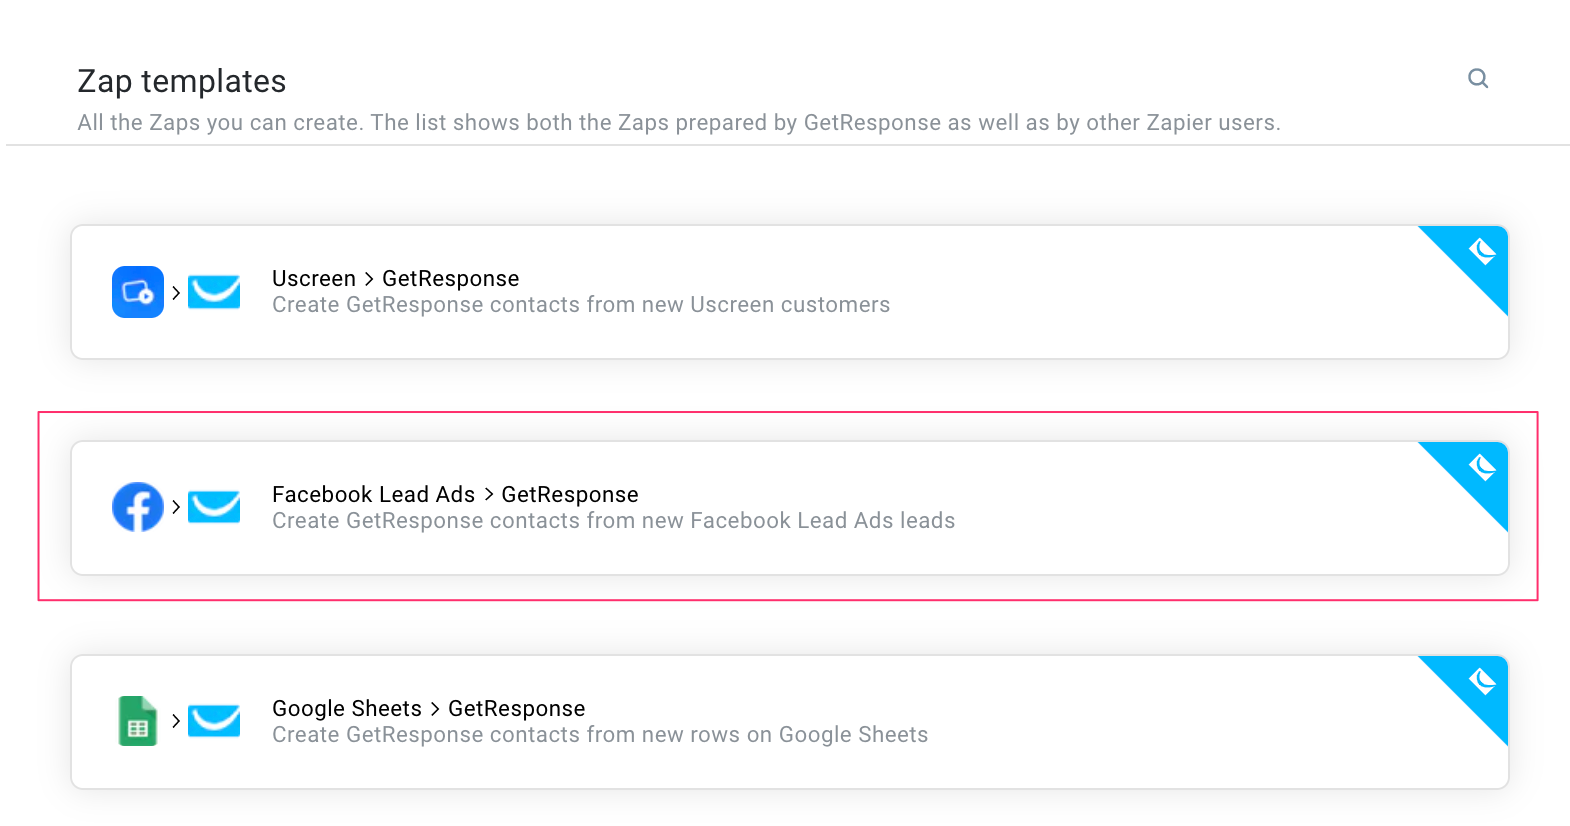 Image showing Zap templates inside of GetResponse and highlighting the Facebook Leads ads and GetResponse automation.